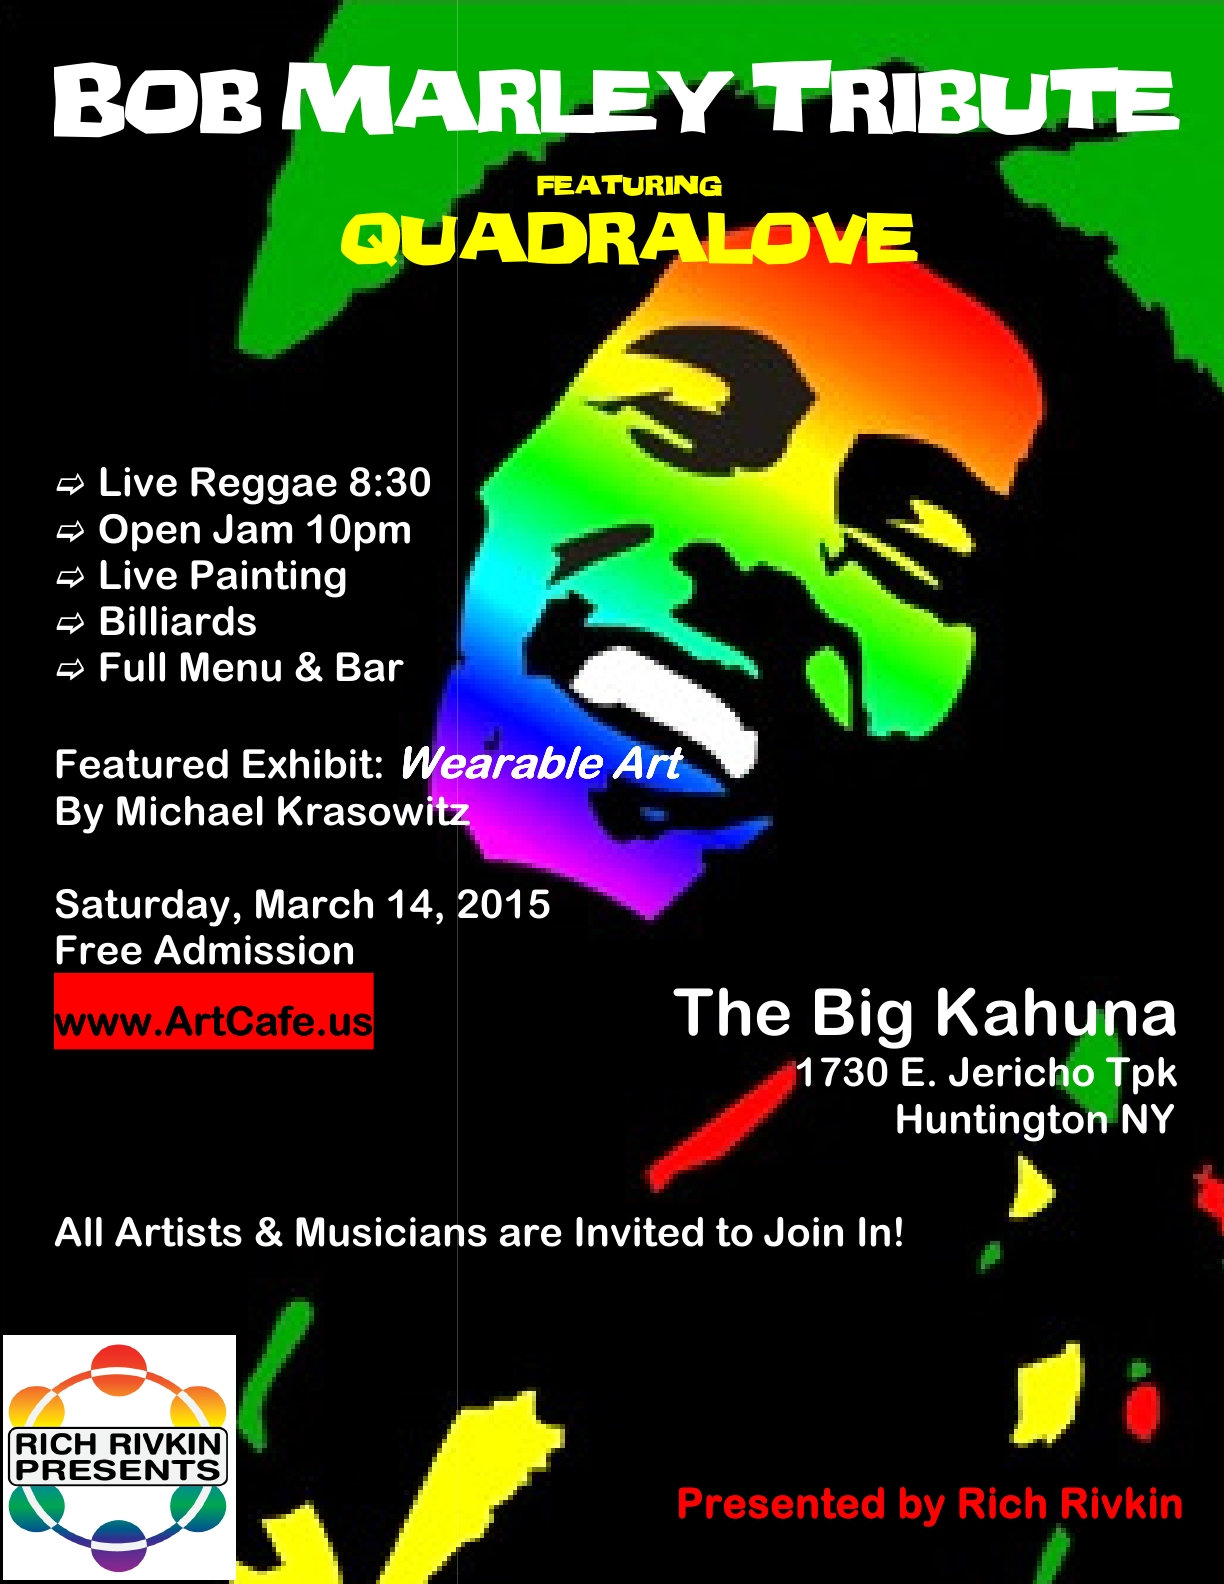 Bob Marley flyer 3 march 2015